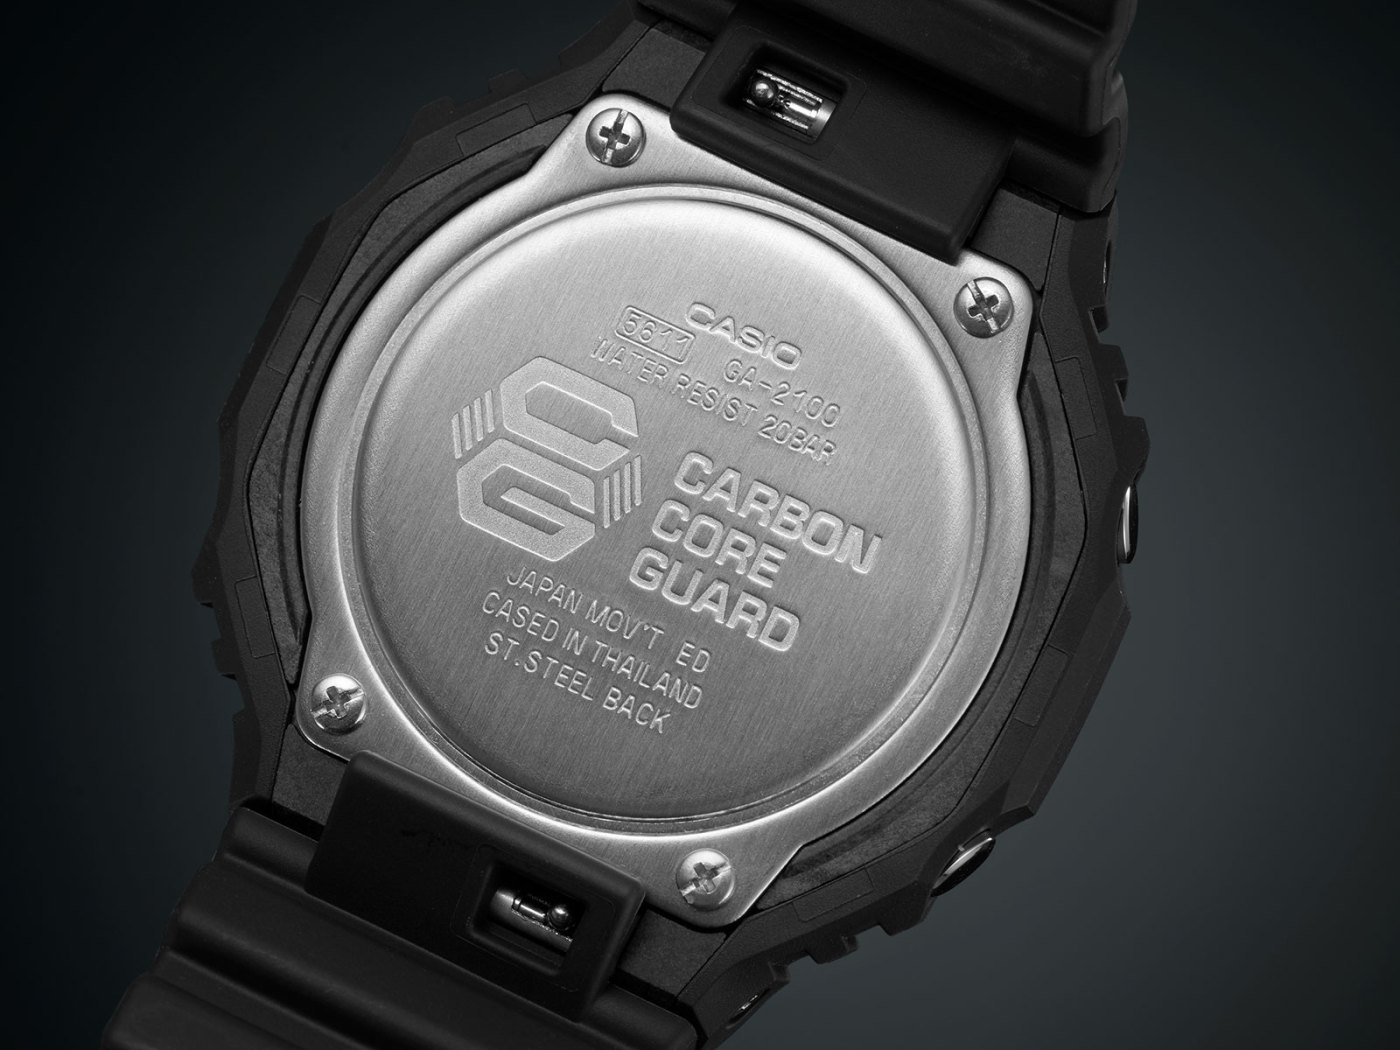 G-Shock GA-2100 Carbon Core Guard